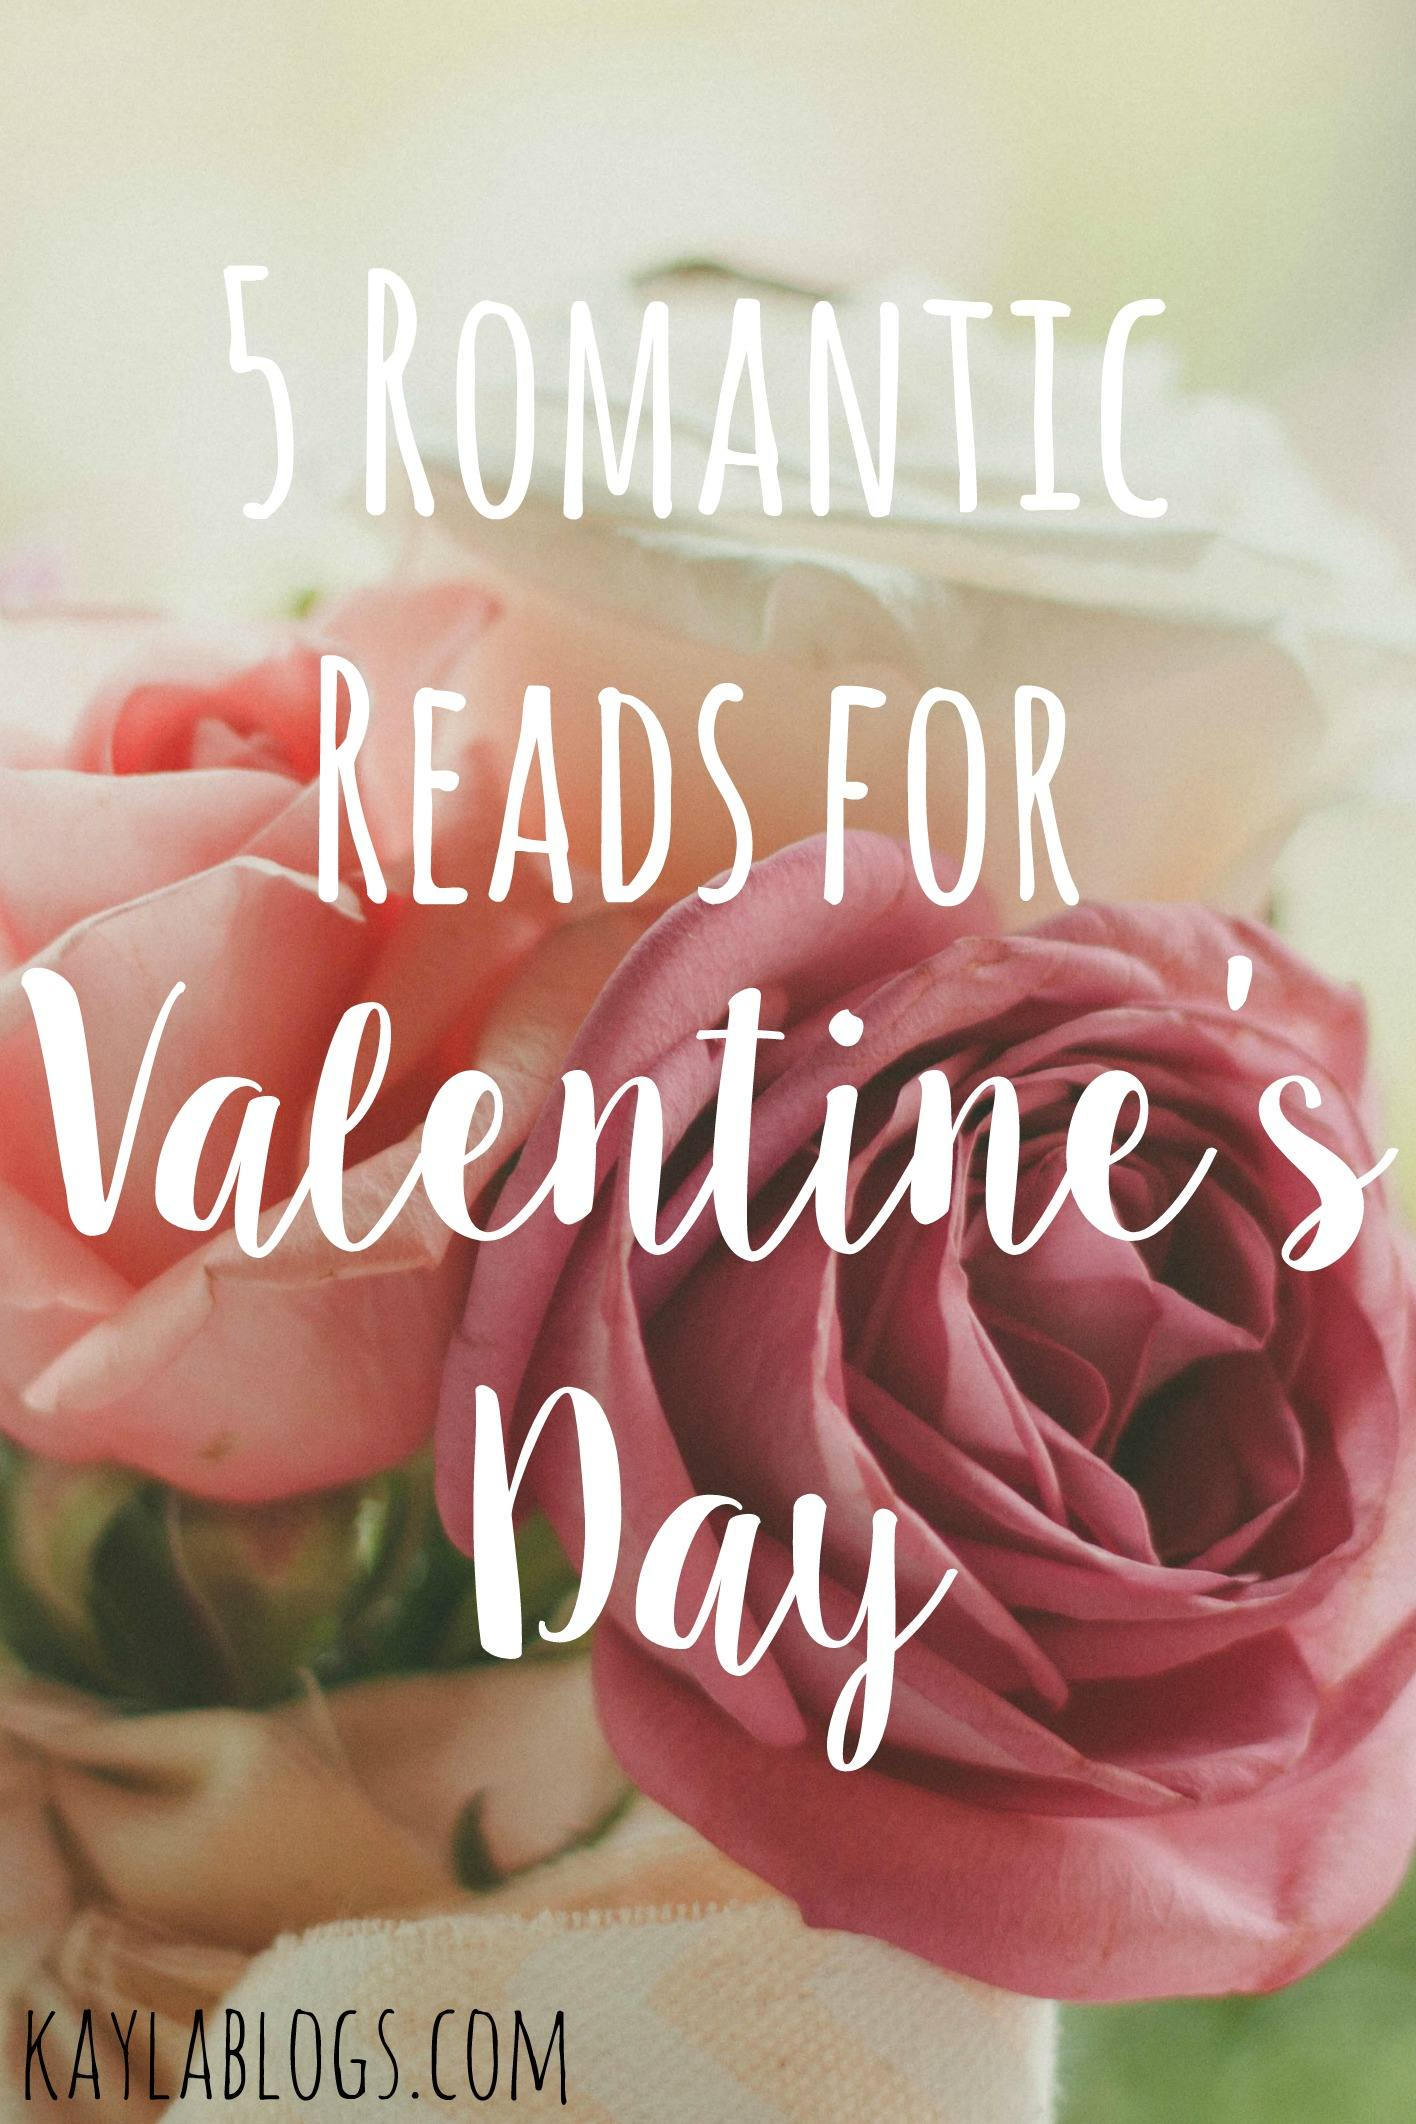 Romantic Reads for Valentines Day